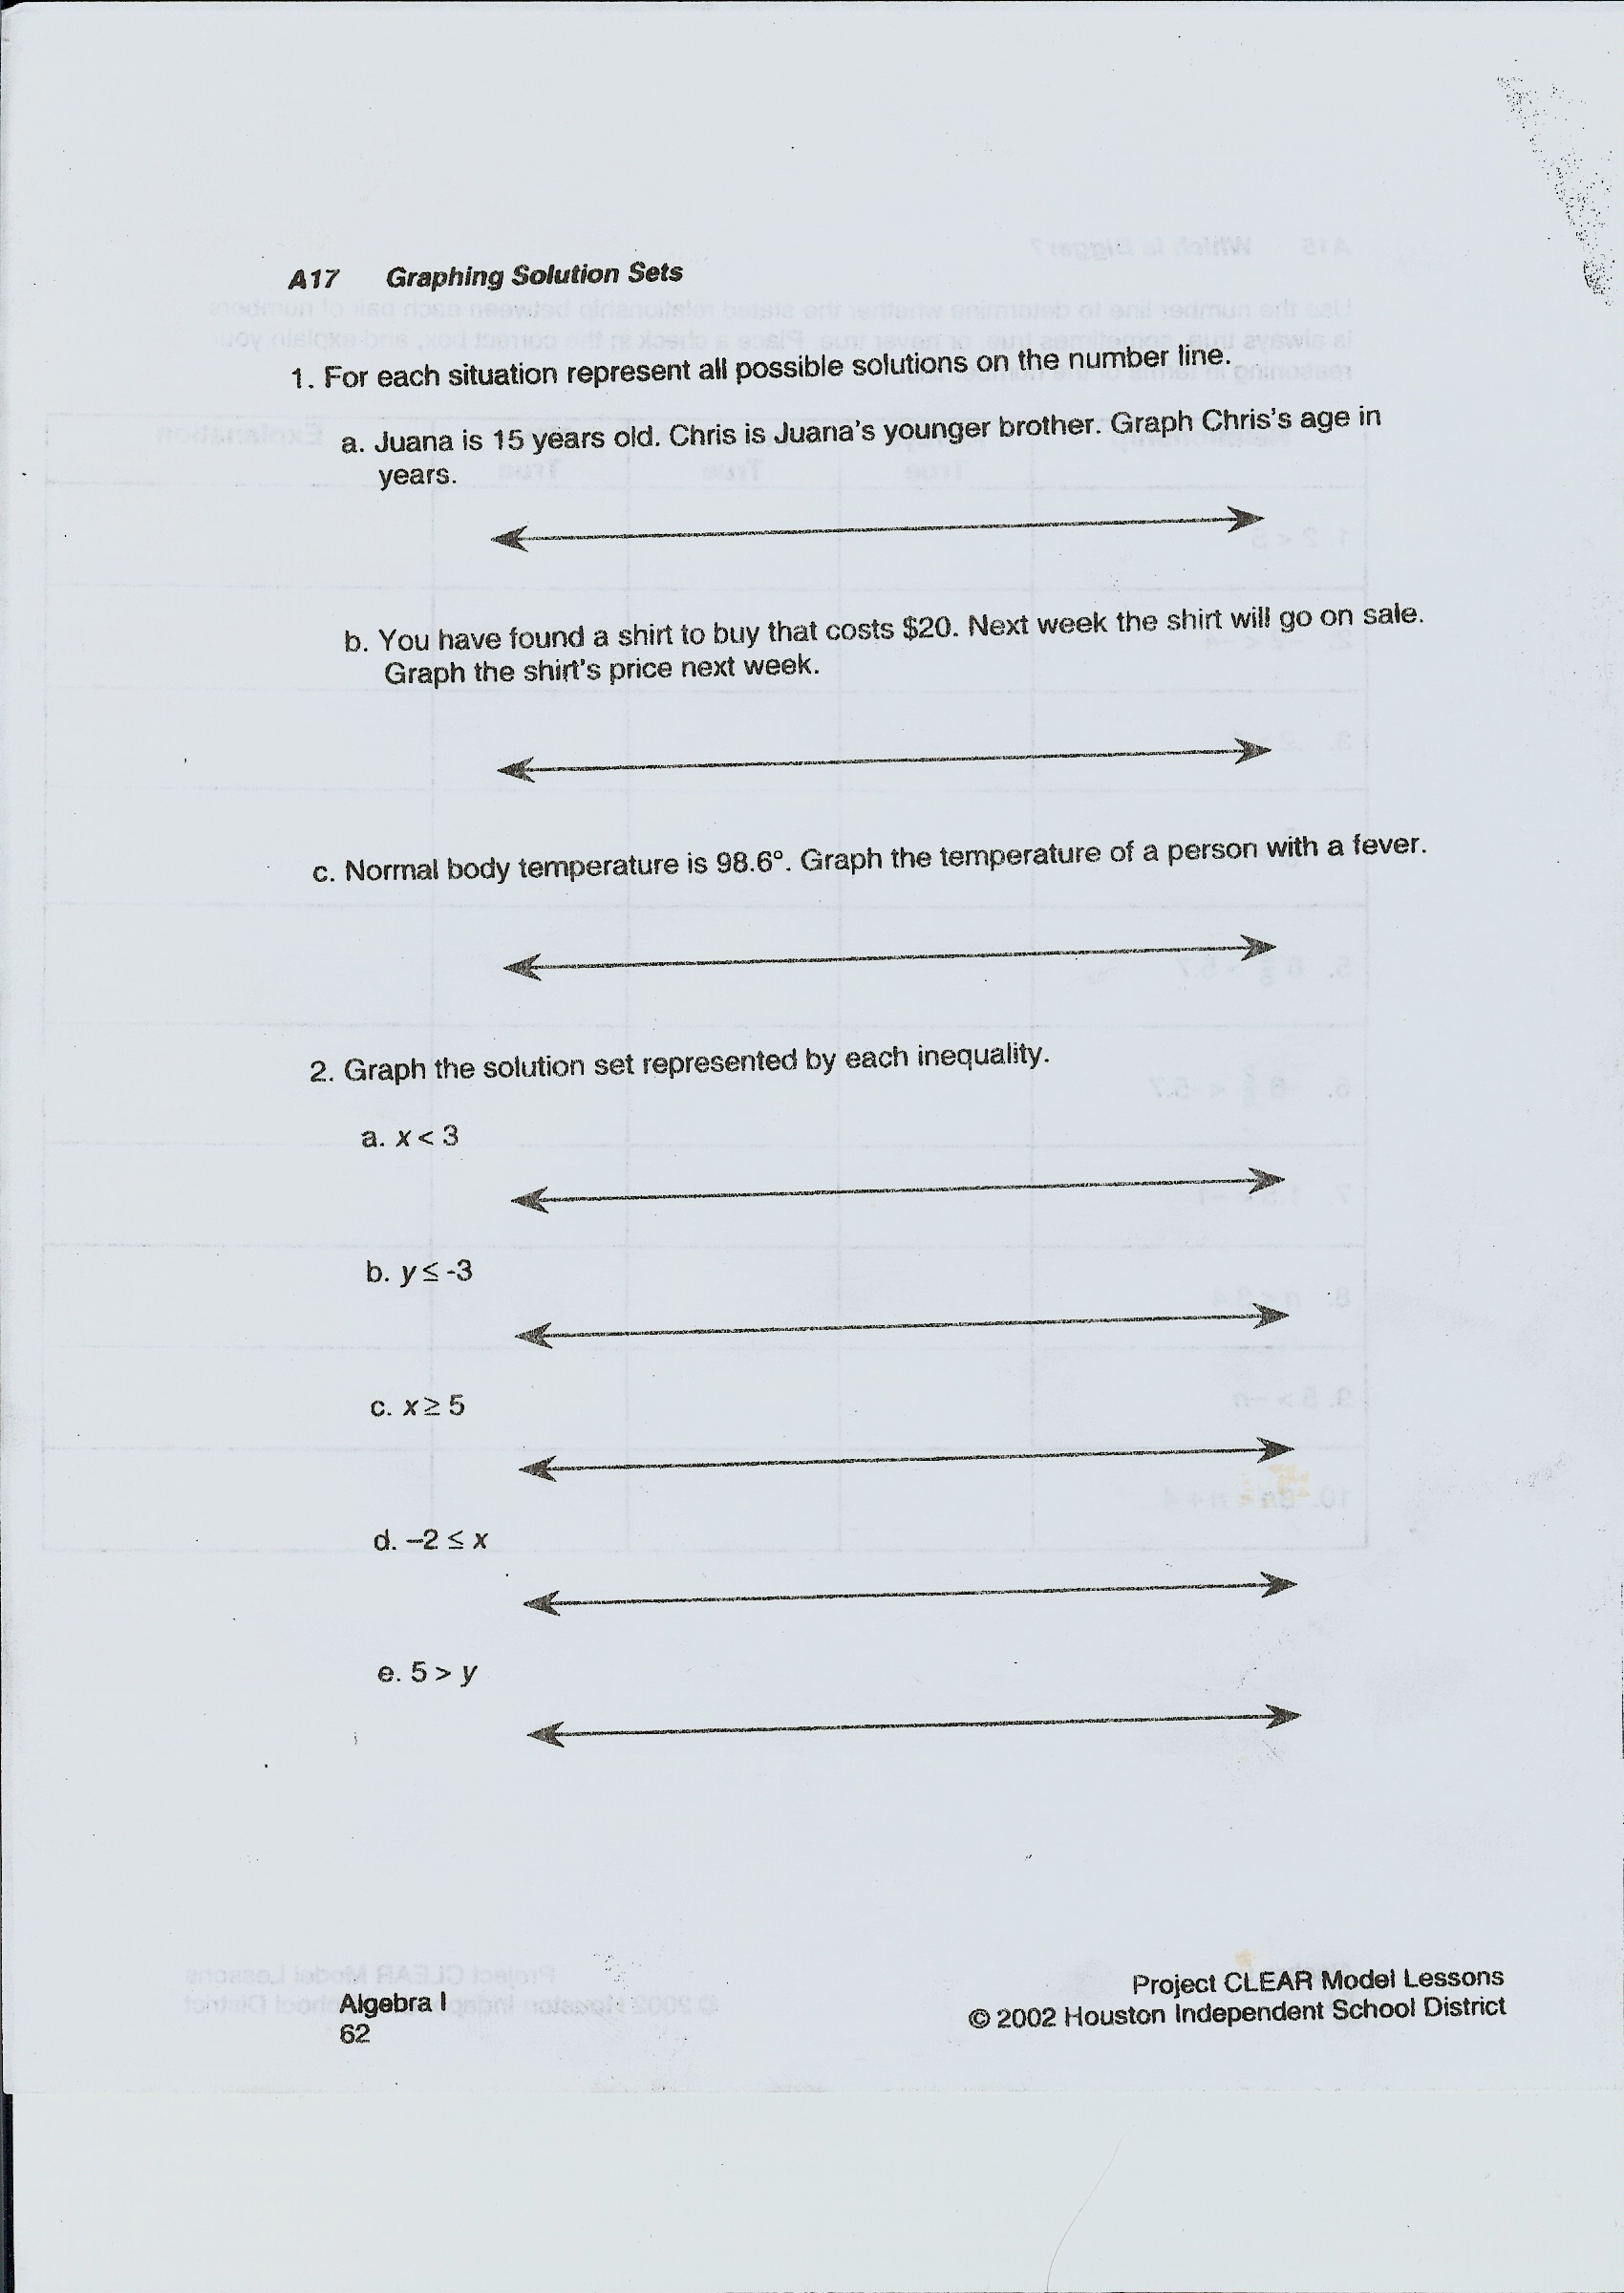 worksheet Graphing Parallel And Perpendicular Lines Worksheet wisniewski boyd welcome read springboard 1 6